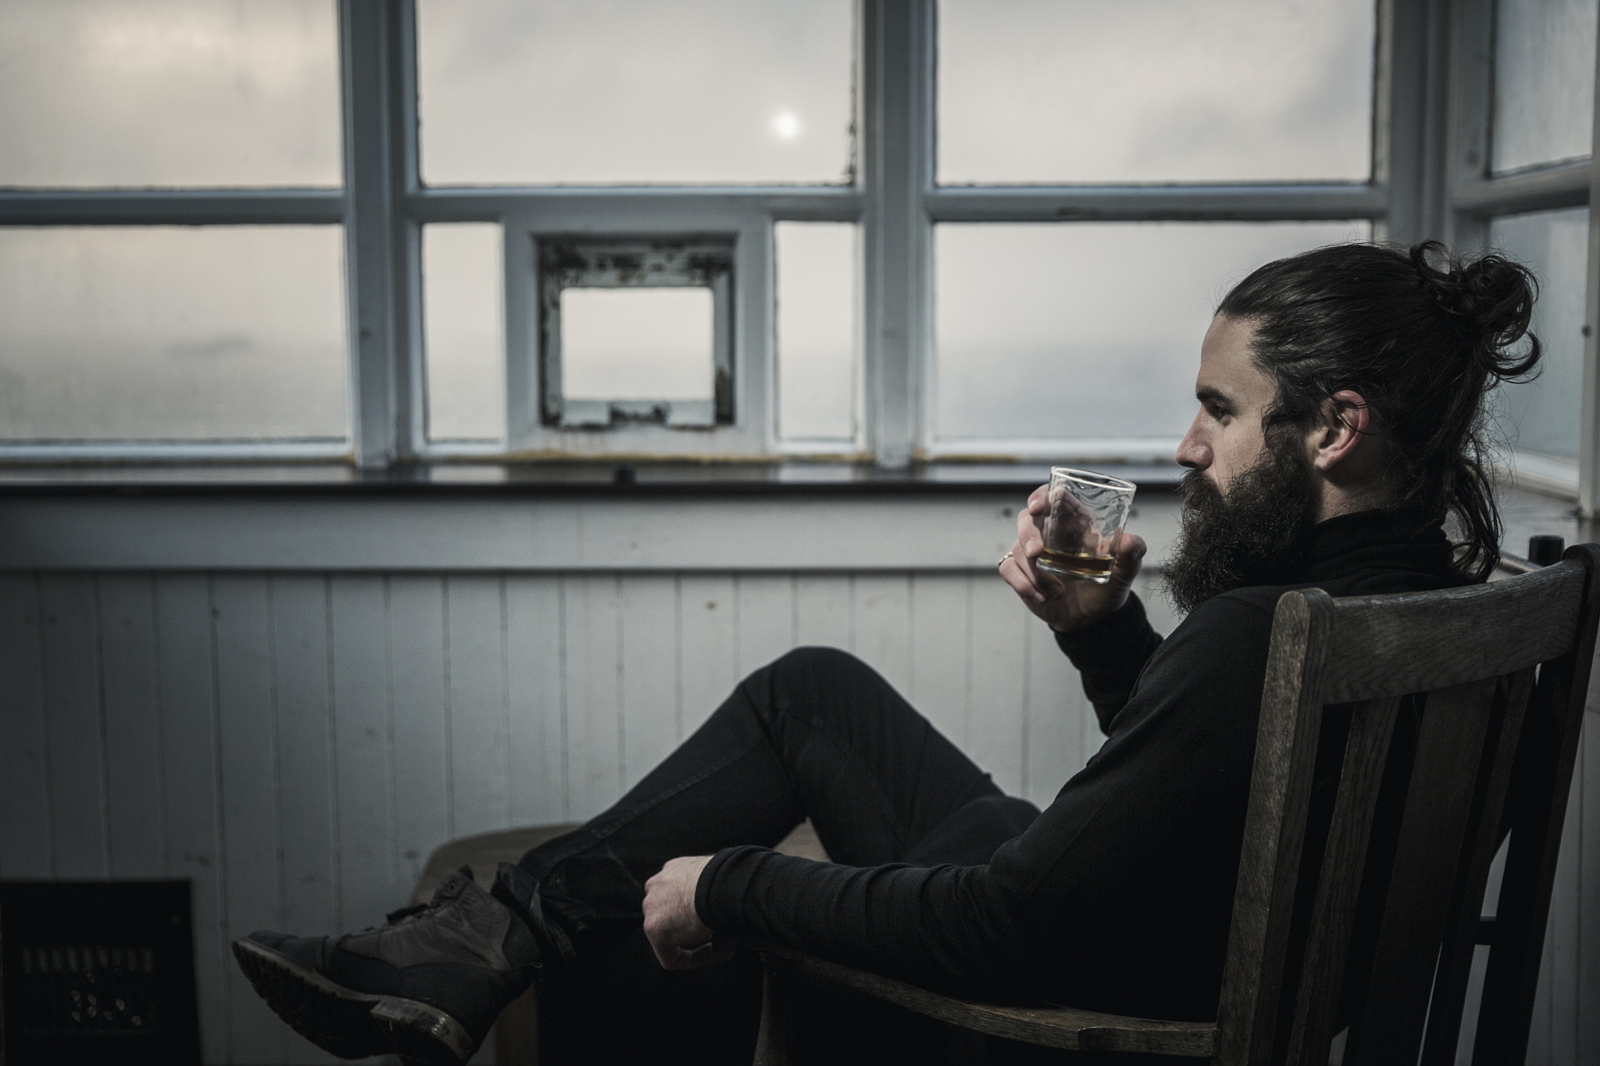 A man sitting looking at the view out of a window, drinking from a glass.